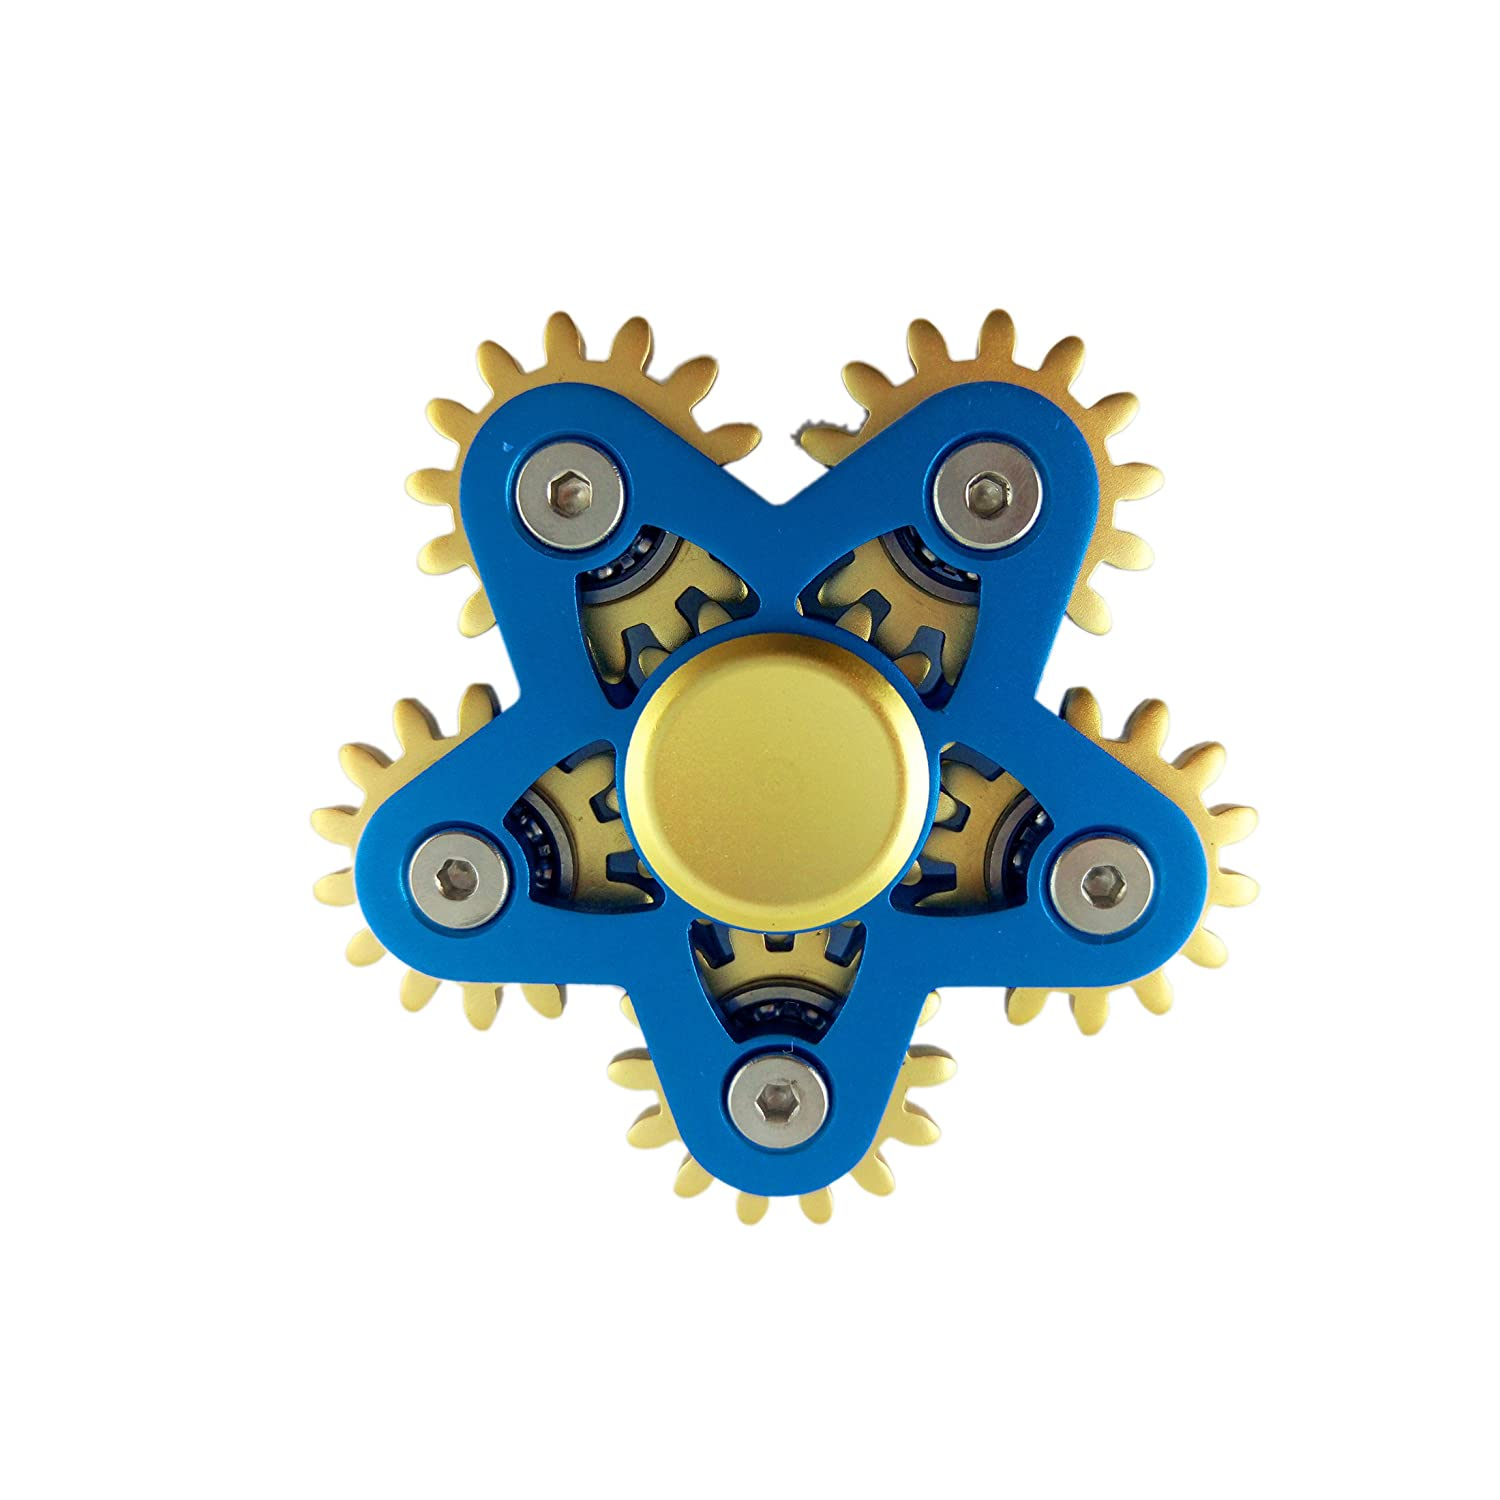 VODA 6 Gear Metal Fidget Spinner Luxury 6 Gear Linkage Spinner Toy High Speed EDC Fidget Toy for Stress Relief Blue